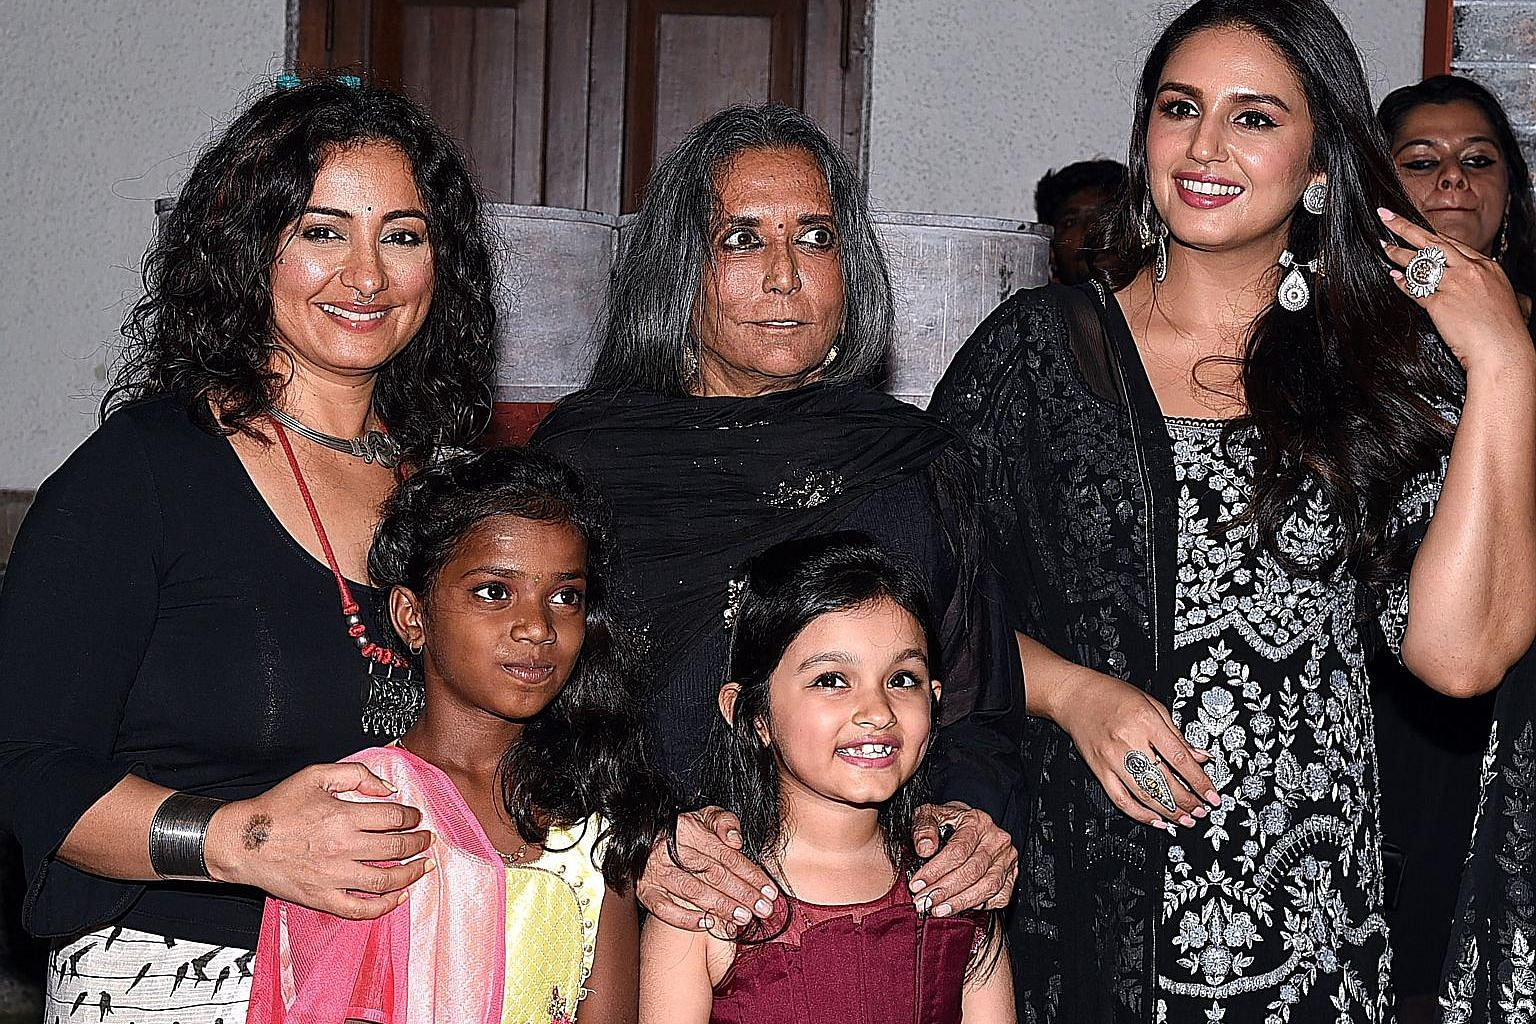 From left: Bollywood playette Divya Dutta, director Deepa Mehta, n' playette Huma Qureshi posin fo' photographs wit lil' hustlas all up in tha premiere of Netflixz Indian original gangsta series Leila, up in Mumbai last month. Competizzle from both global n' local